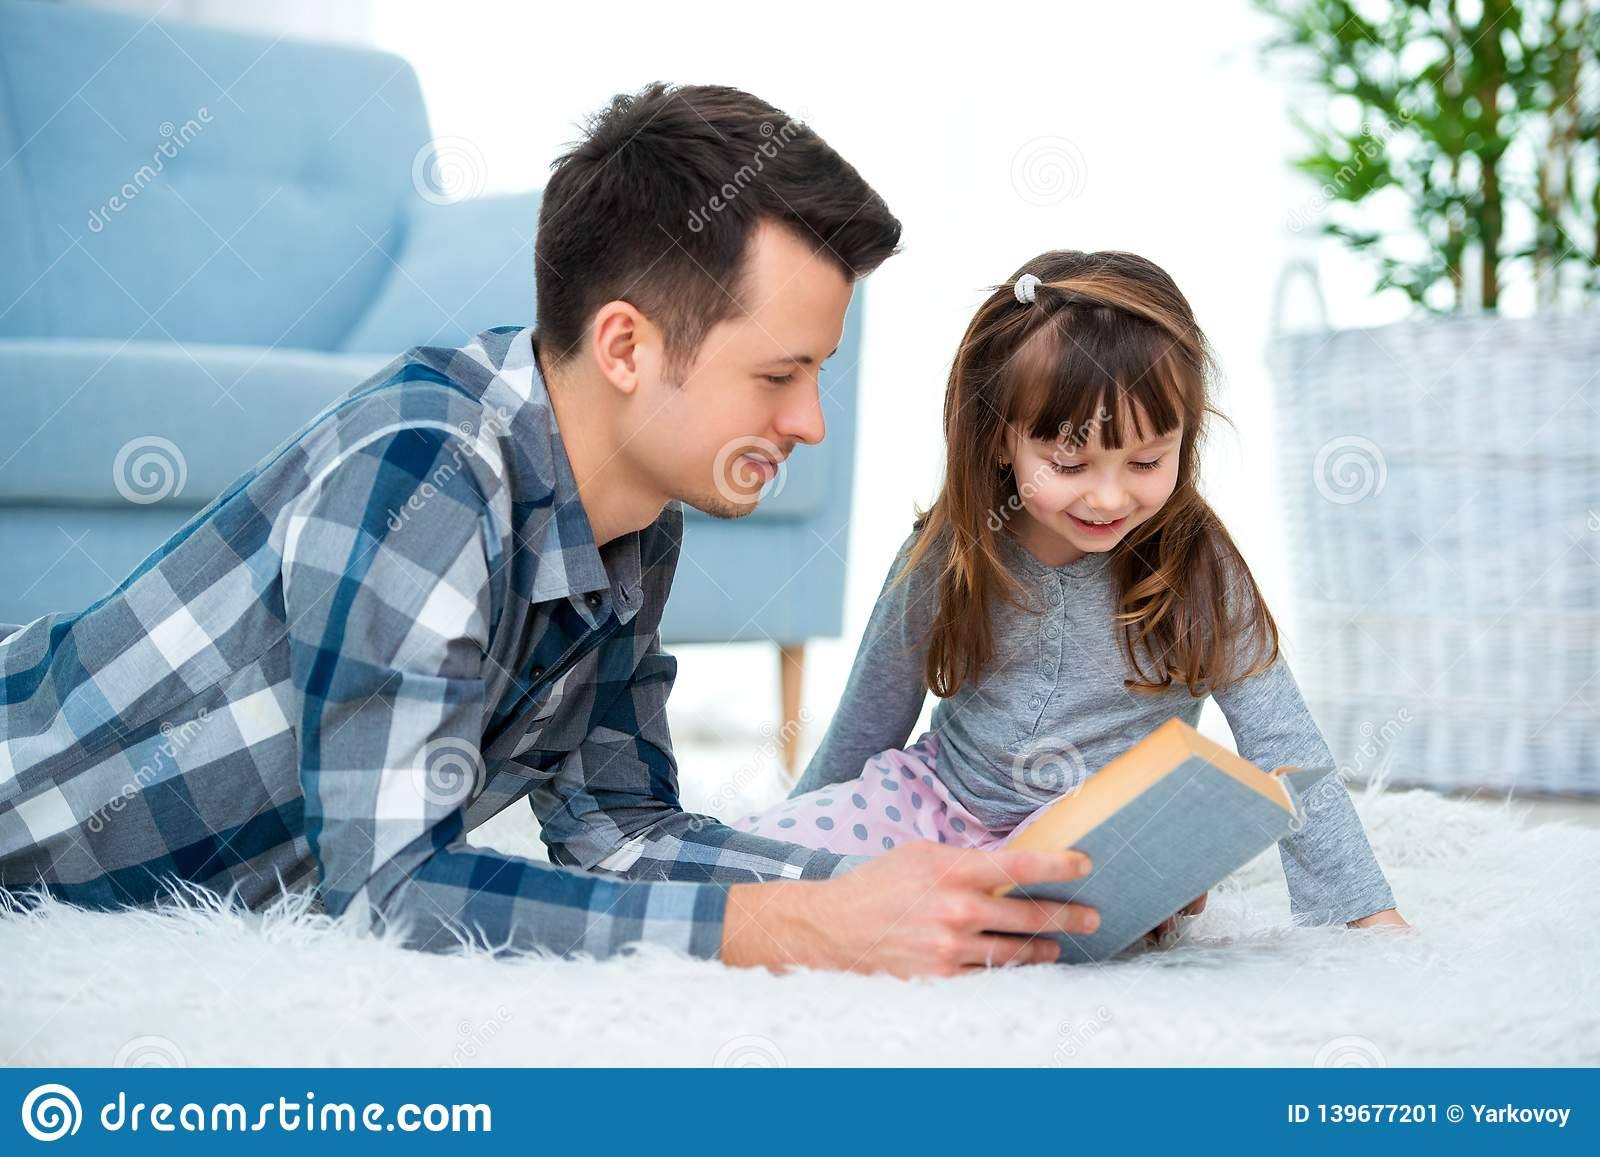 Cute little girl listening to dad reading fairy tale lying on warm floor together, caring father holding book , family hobbies